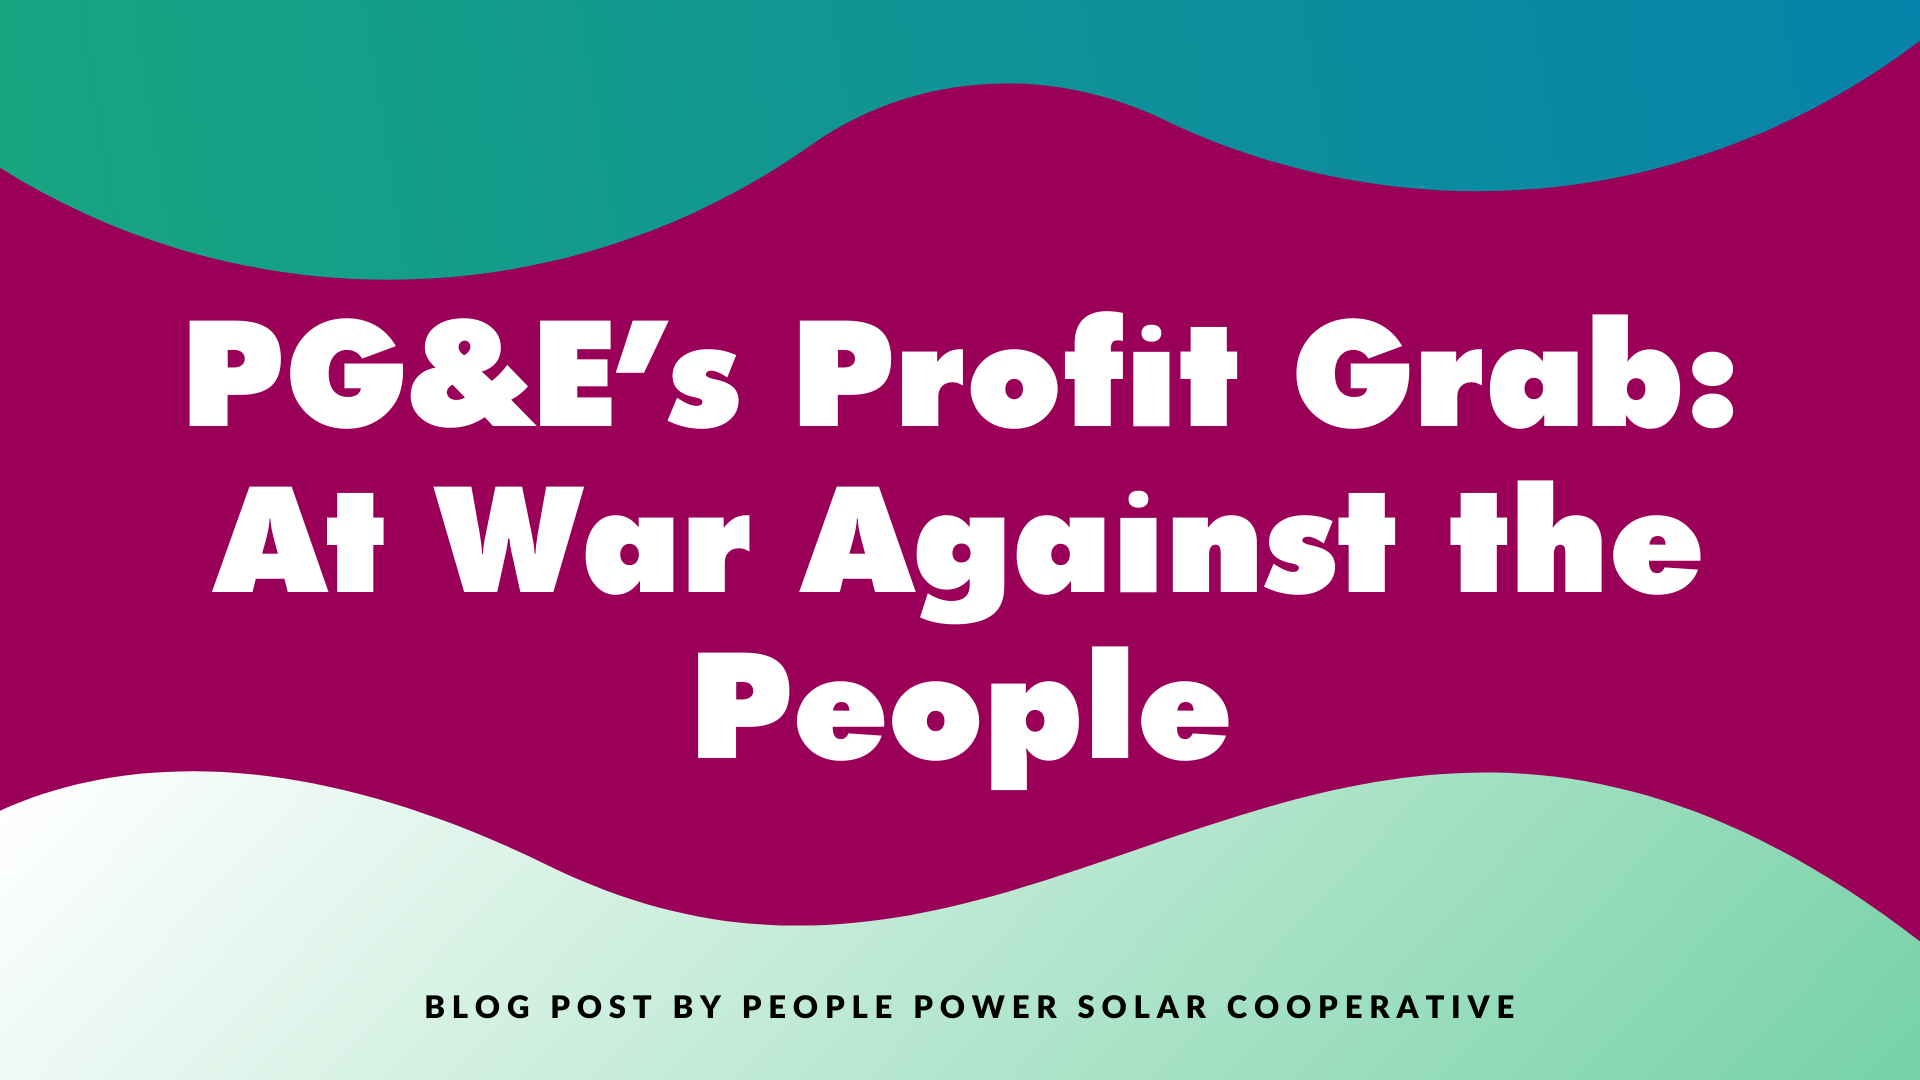 PG&E's Profit Grab: At War Against the People